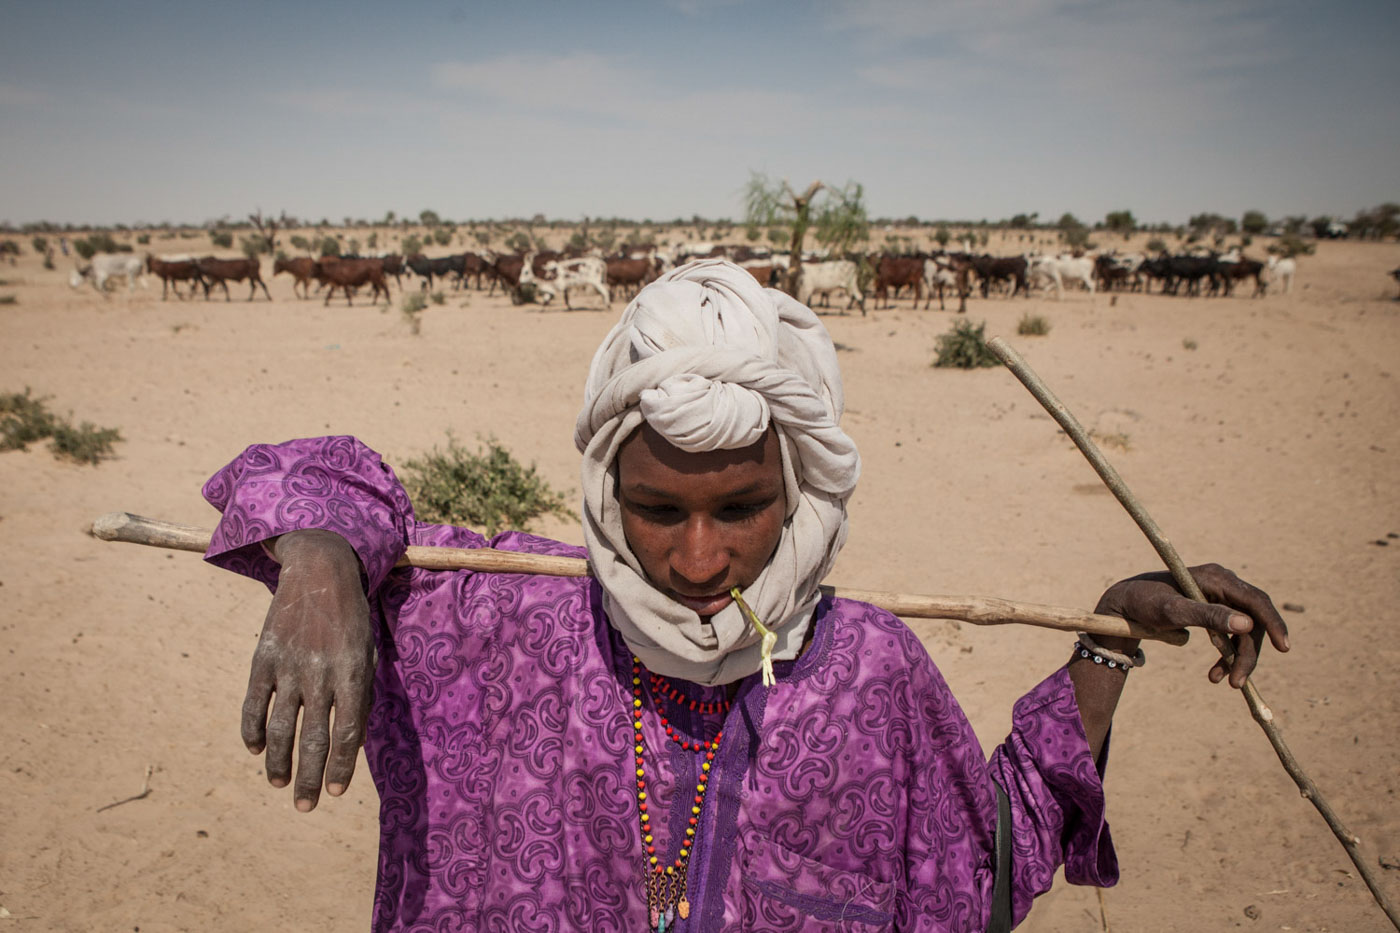 A herder leads his cows across Diffa, Niger